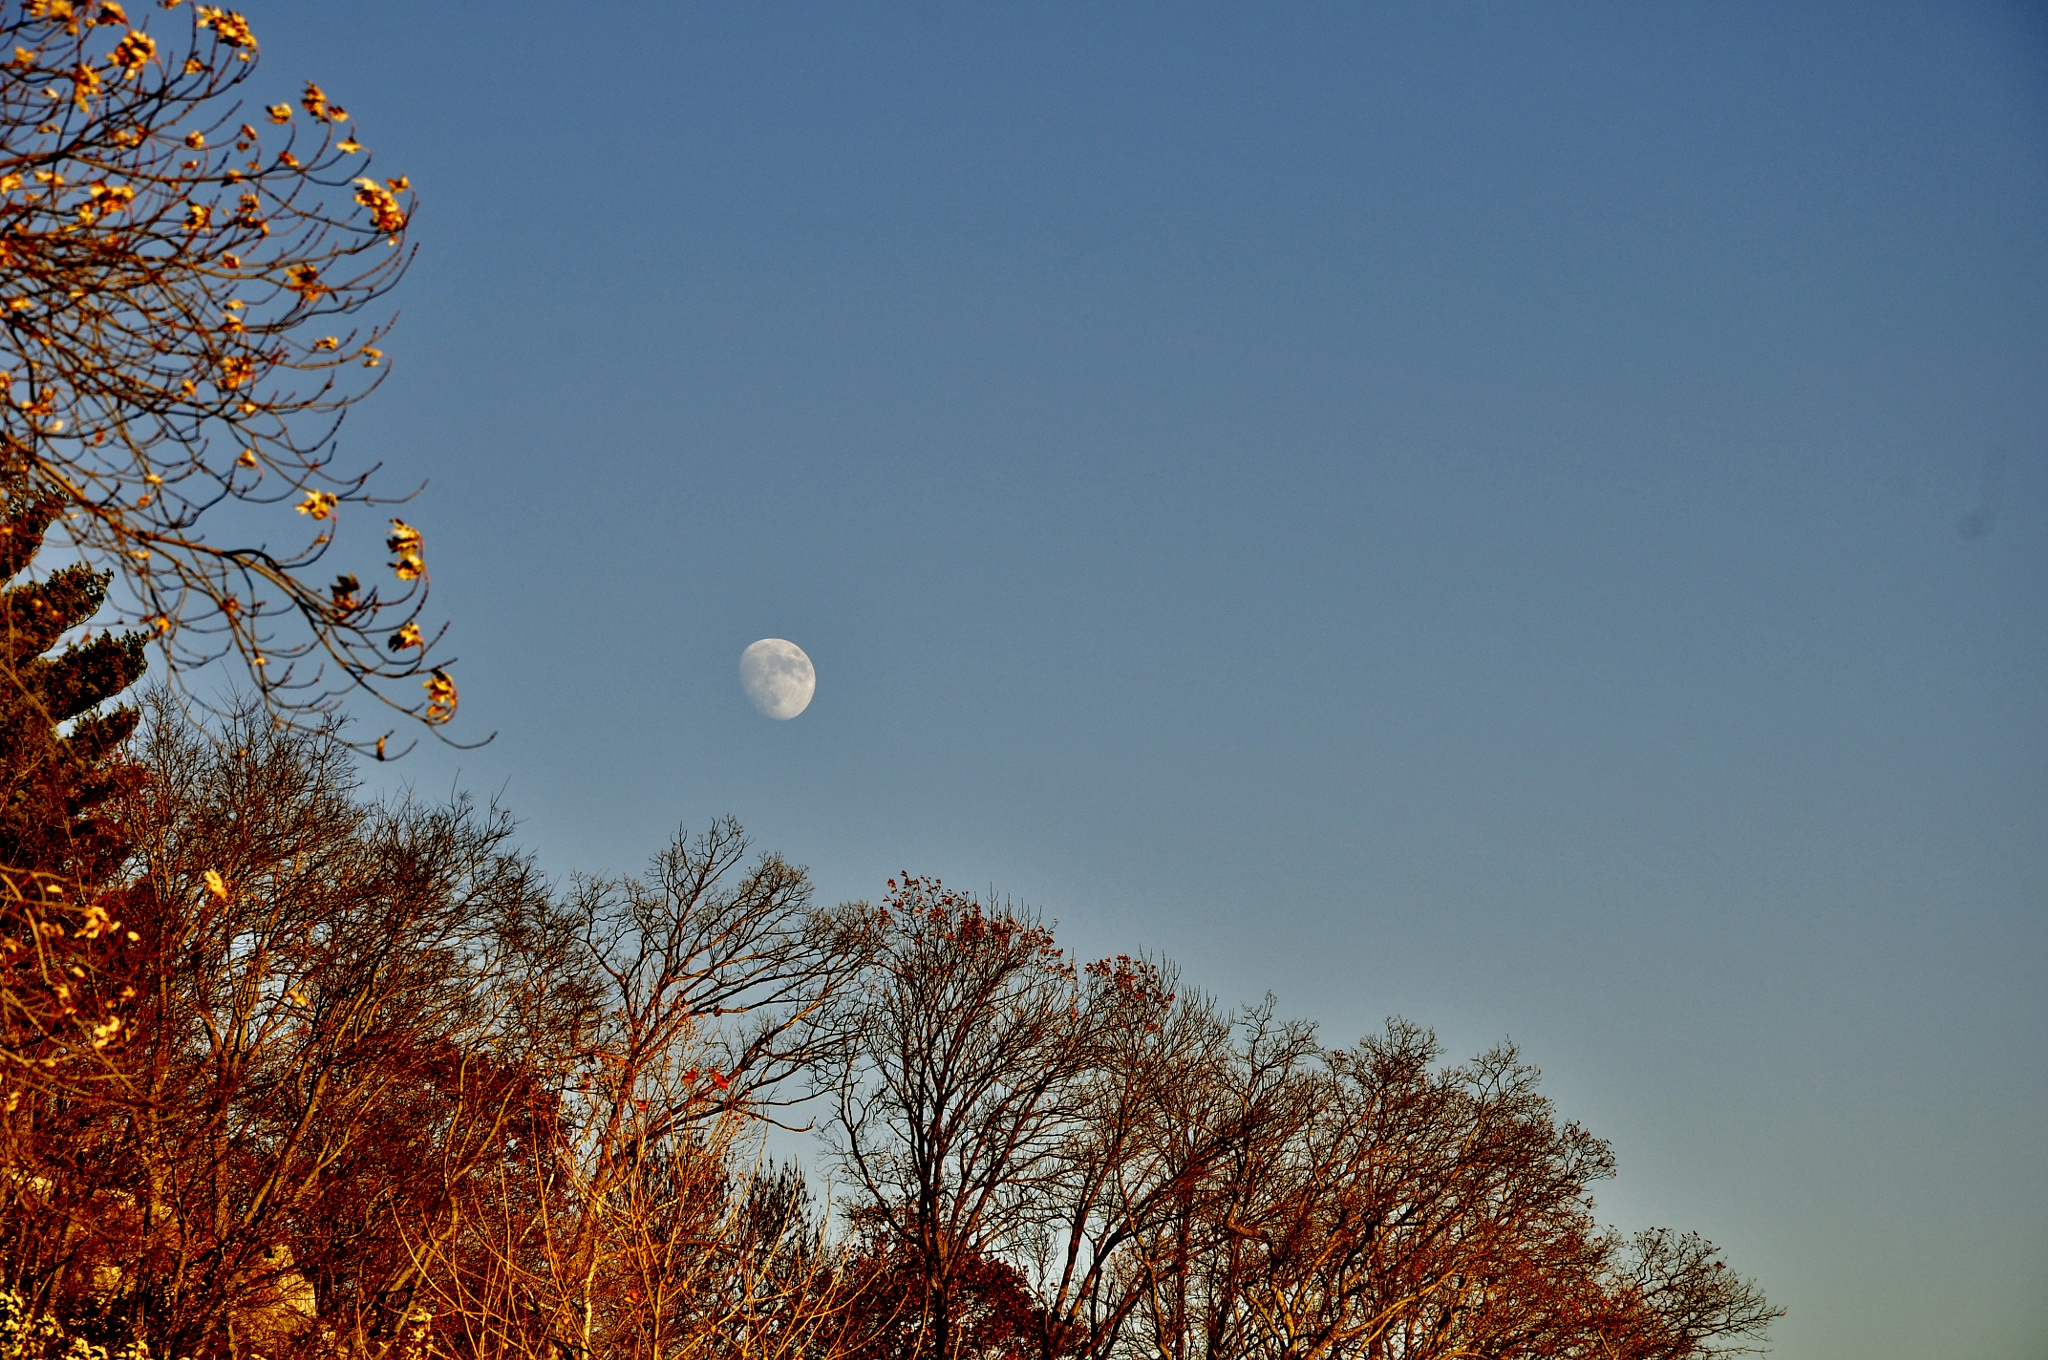 Moon during the day. by debbylesko